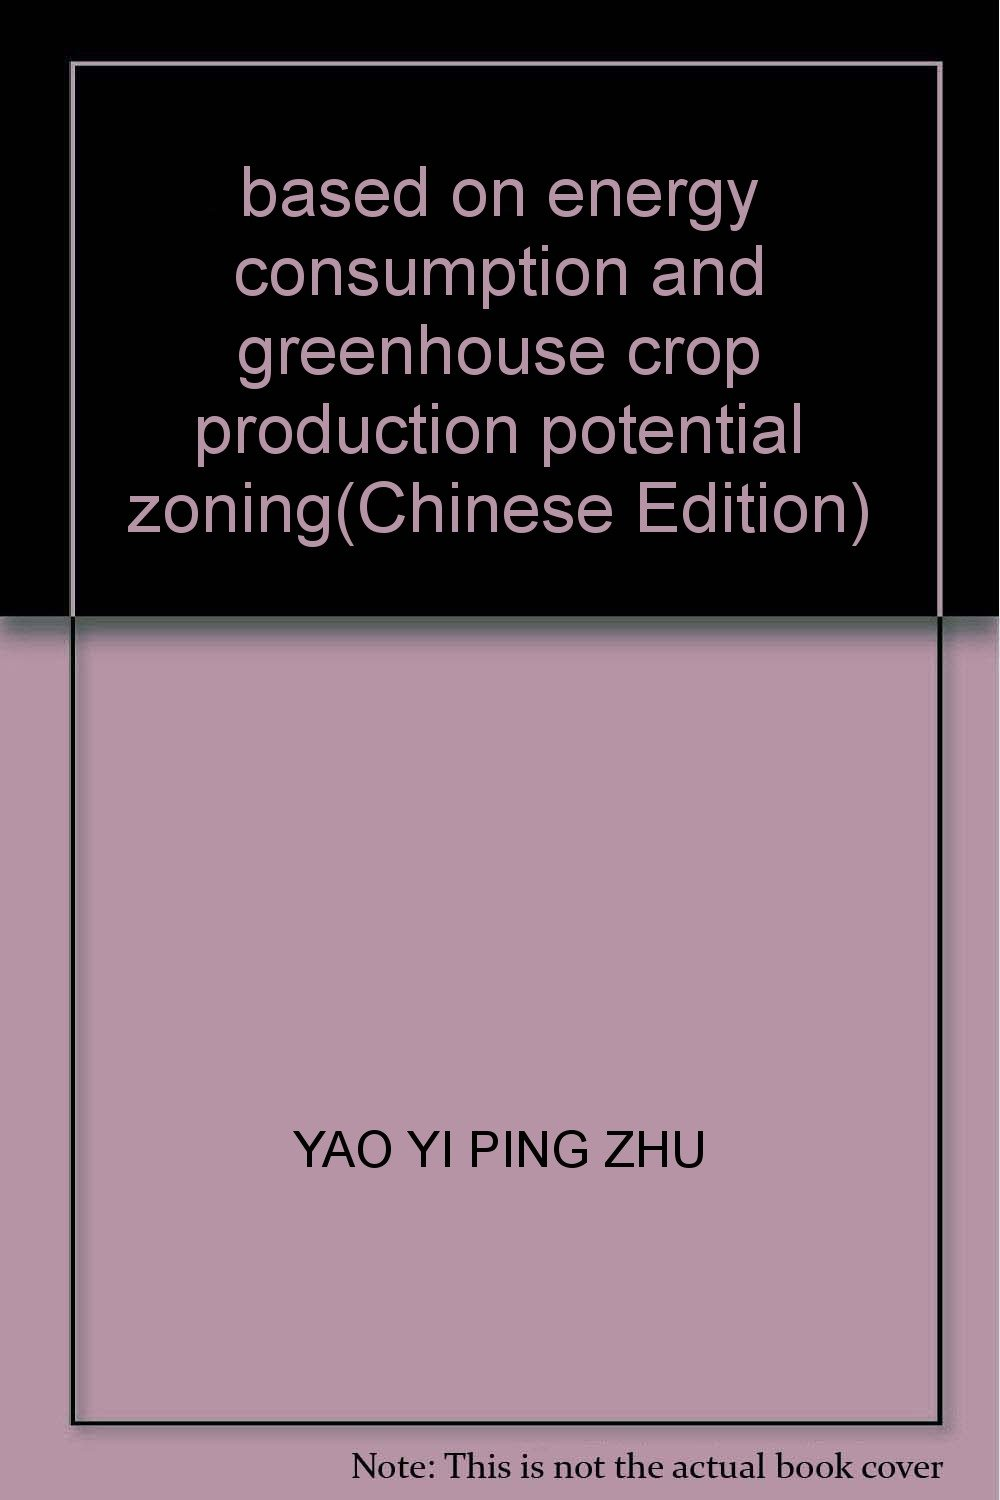 based on energy consumption and greenhouse crop production potential zoning(Chinese Edition)